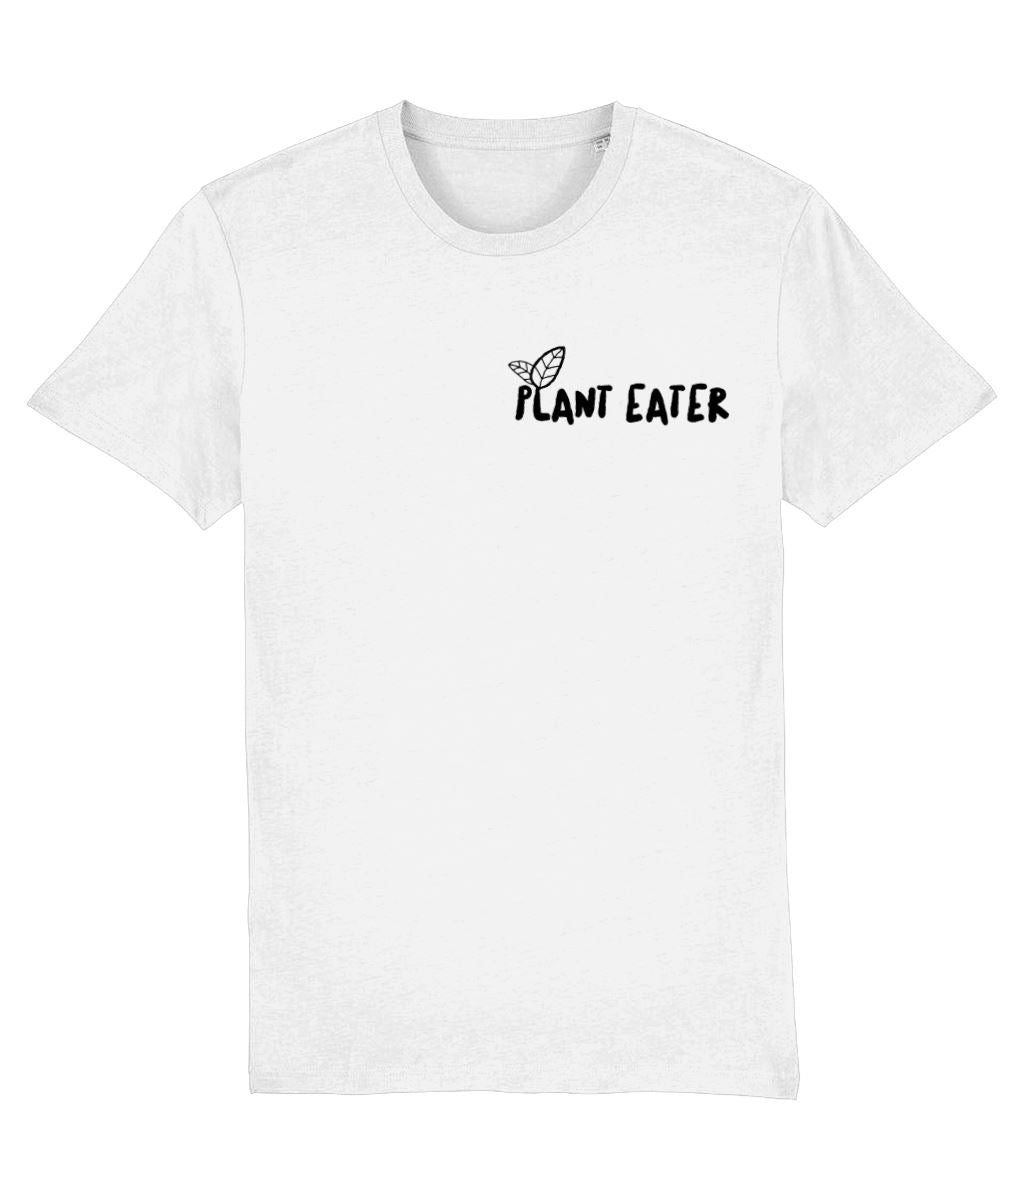 """Plant Eater"" Vegan T-Shirt - 100% Organic Cotton (Unisex) Clothing Vegan Original White XX-Small"